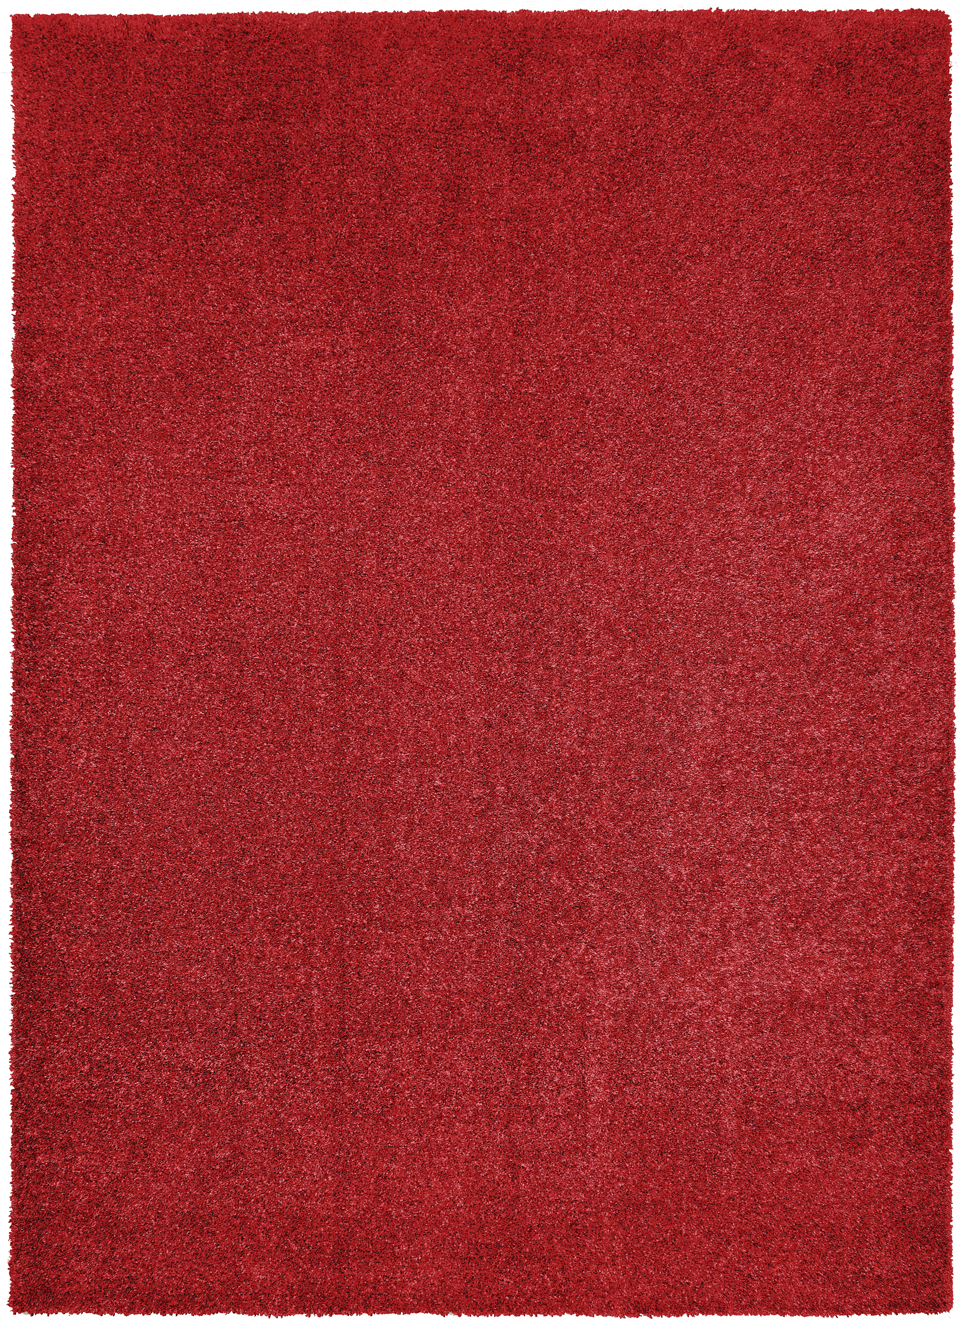 Tapis chiné rouge coquelicot Toscana 60x115. MA Salgueiro.